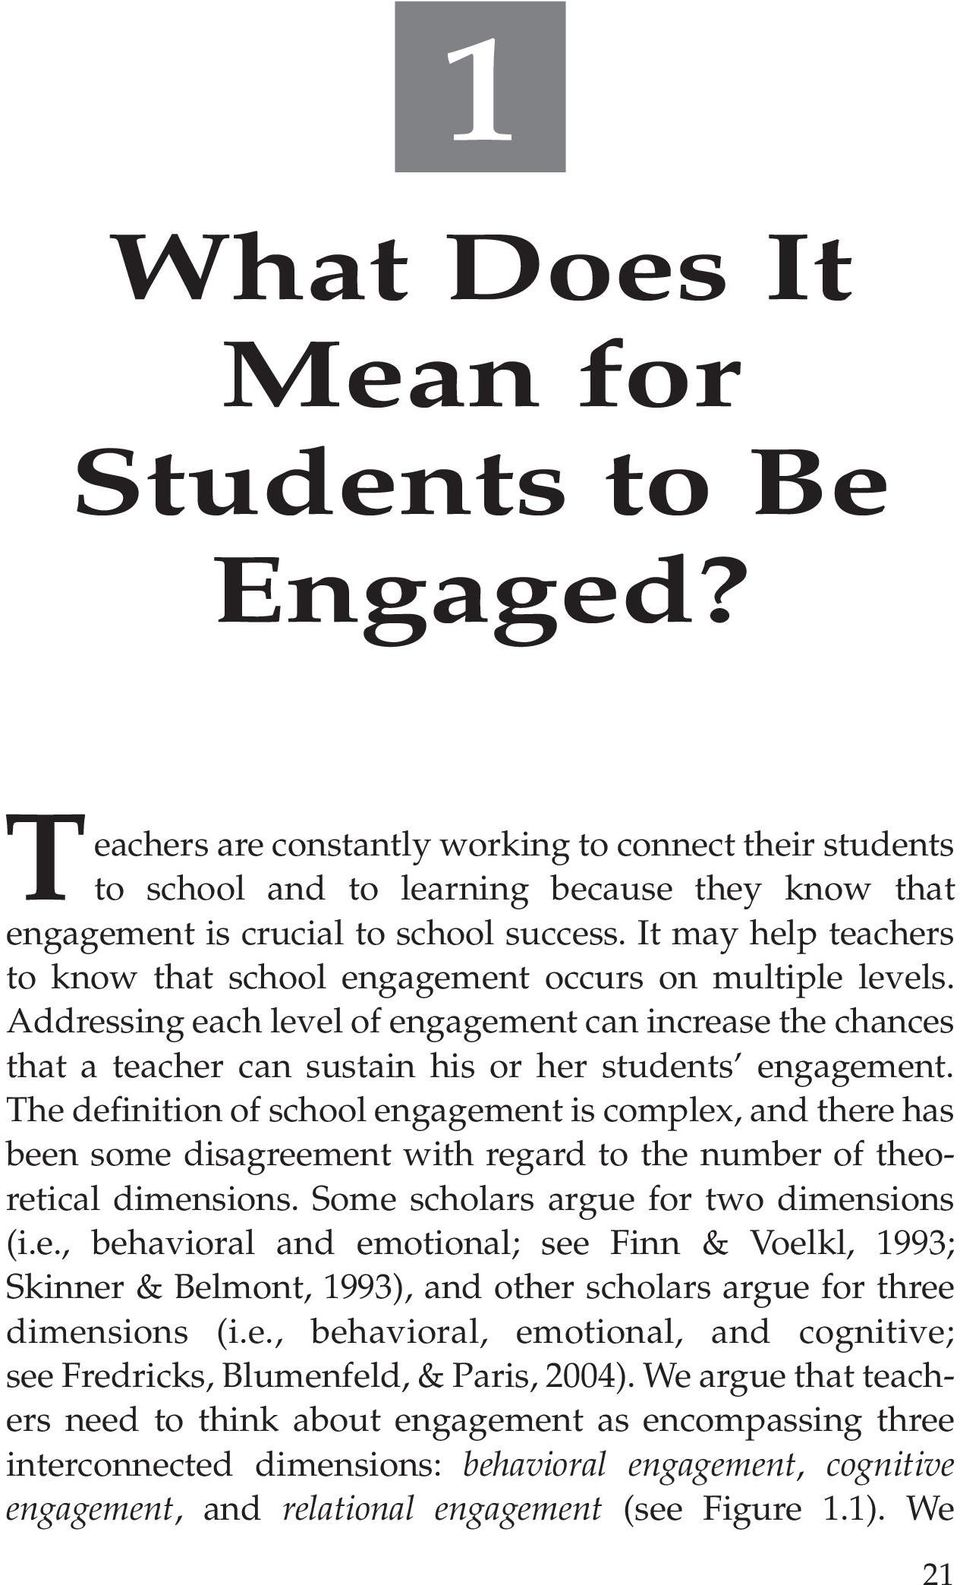 The definition of school engagement is complex, and there has been some disagreement with regard to the number of theoretical dimensions. Some scholars argue for two dimensions (i.e., behavioral and emotional; see Finn & Voelkl, 1993; Skinner & Belmont, 1993), and other scholars argue for three dimensions (i.